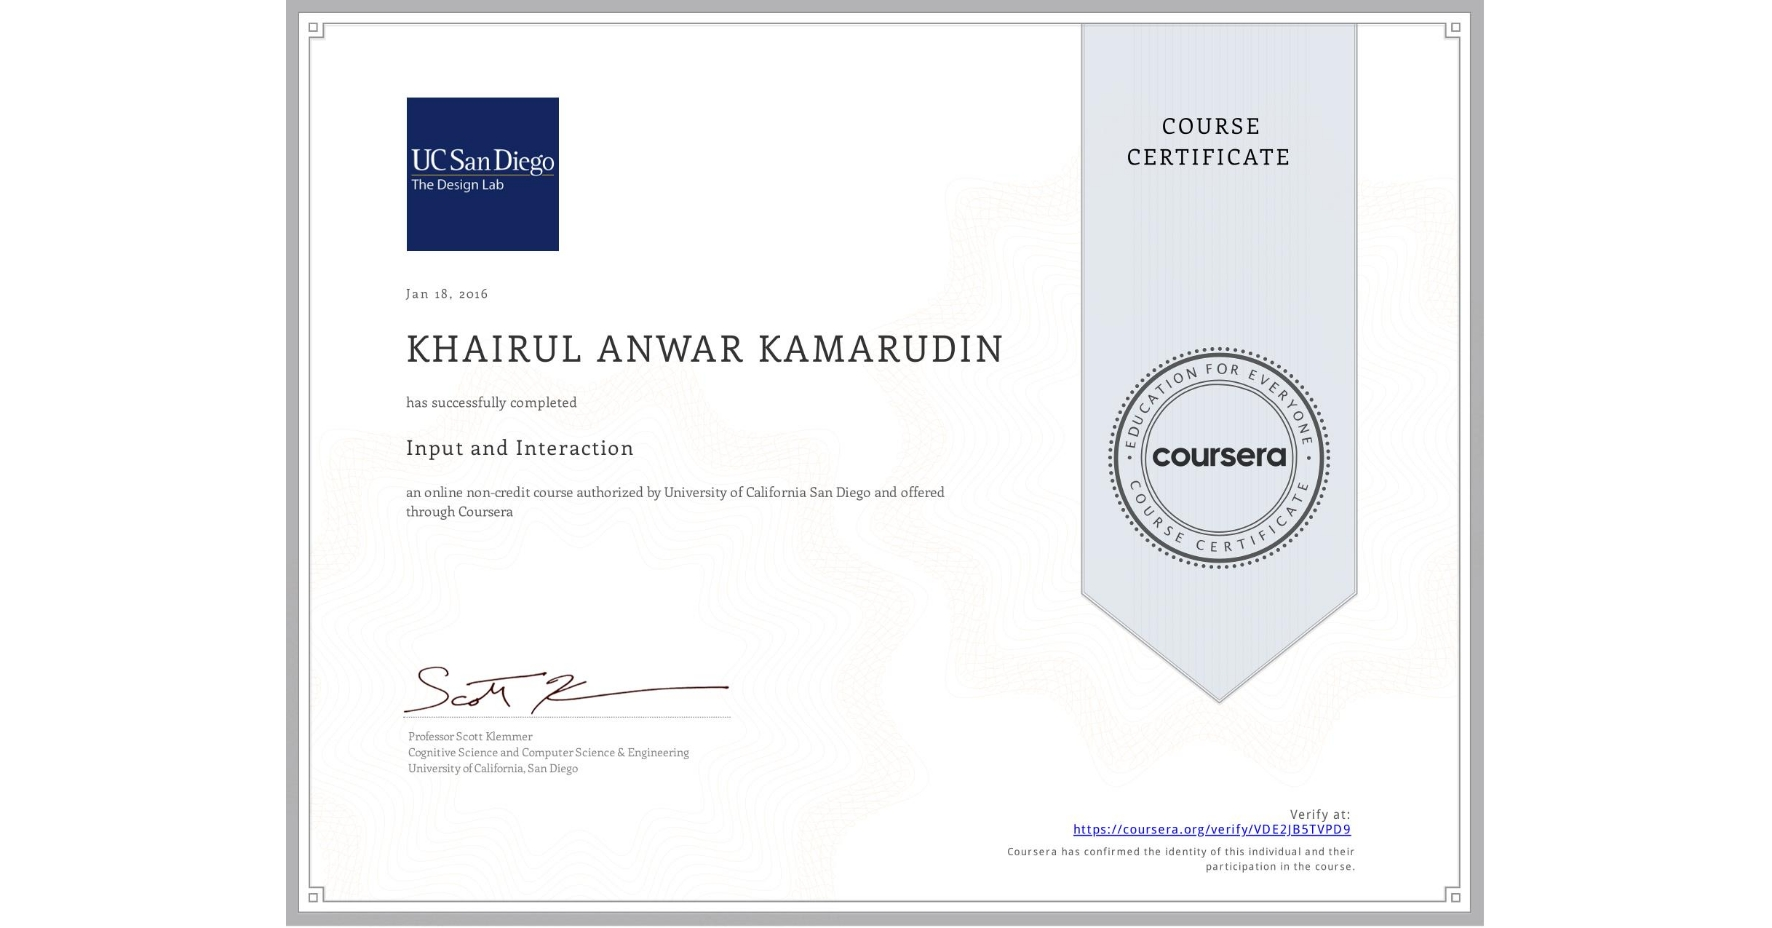 View certificate for KHAIRUL ANWAR  KAMARUDIN, Input and Interaction, an online non-credit course authorized by University of California San Diego and offered through Coursera